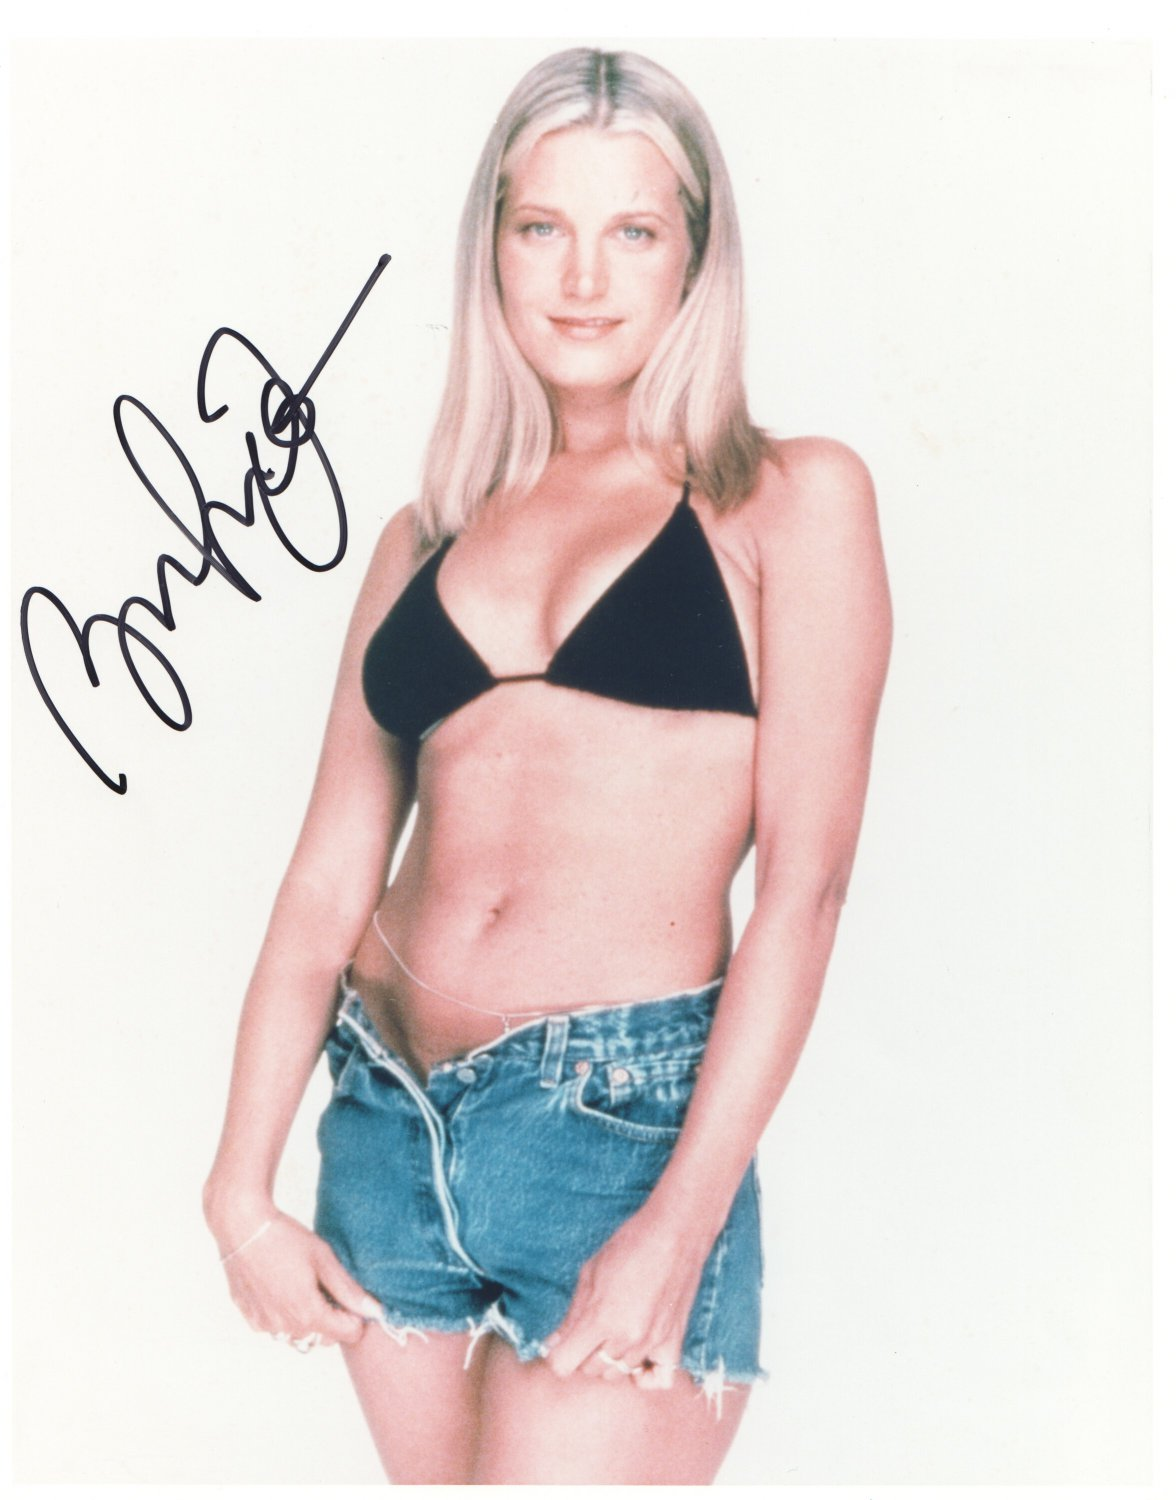 BRDGET FONDA - YOUNG - SEXY - HAND SIGNED AUTOGRAPHED PHOTO WITH COA